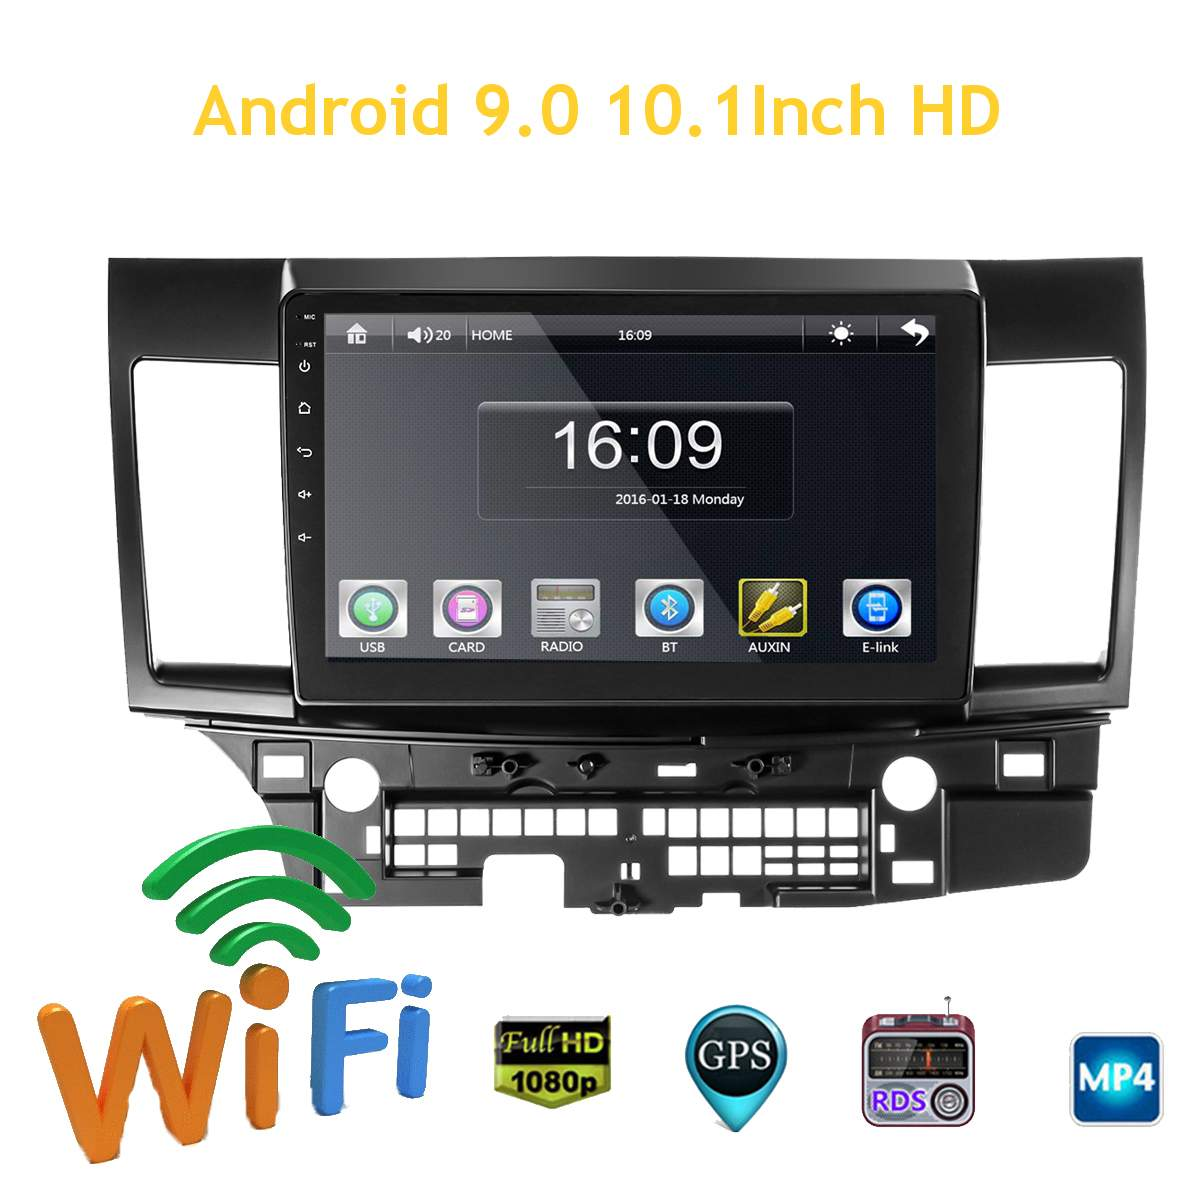 10.1 Inch 2 DIN for Android 9.0 Car Stereo 4+32G Quad Core MP5 Player GPS WIFI FM AM Radio for Mitsubishi Lancer Car Multimedia(China)